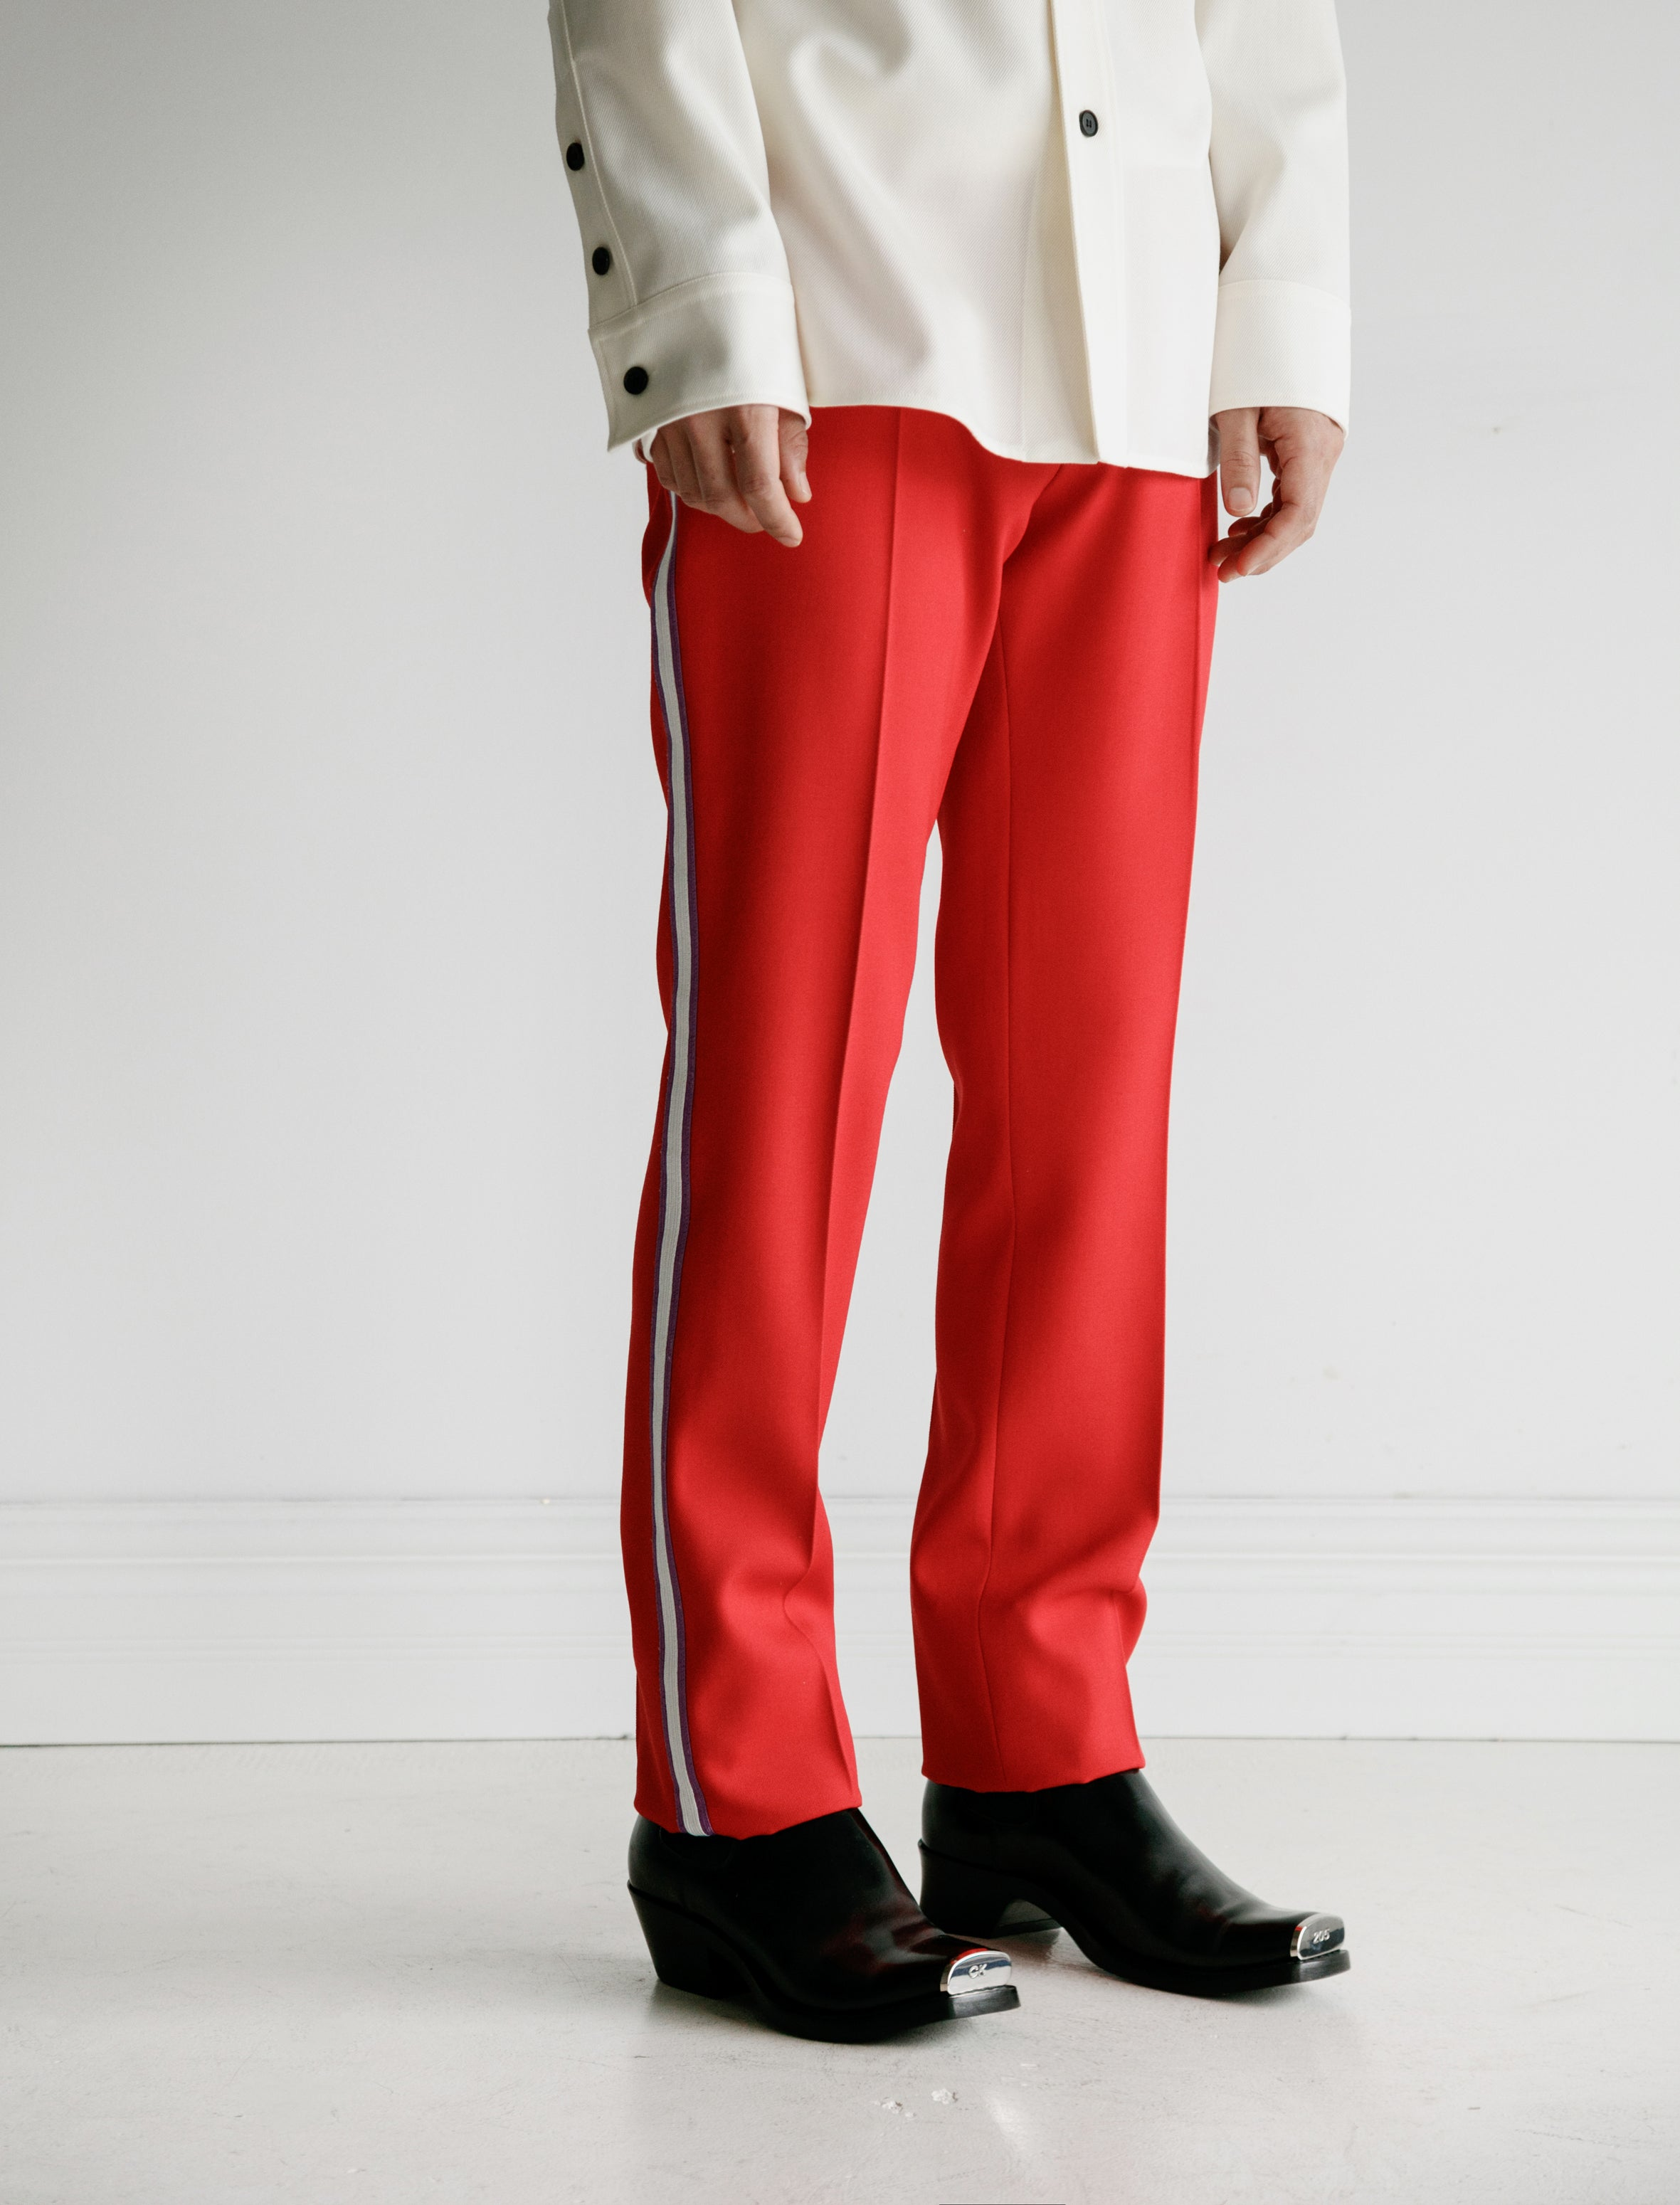 CALVINKLEIN205W39NYC Uniform Pant with Side Stripe Scarlet